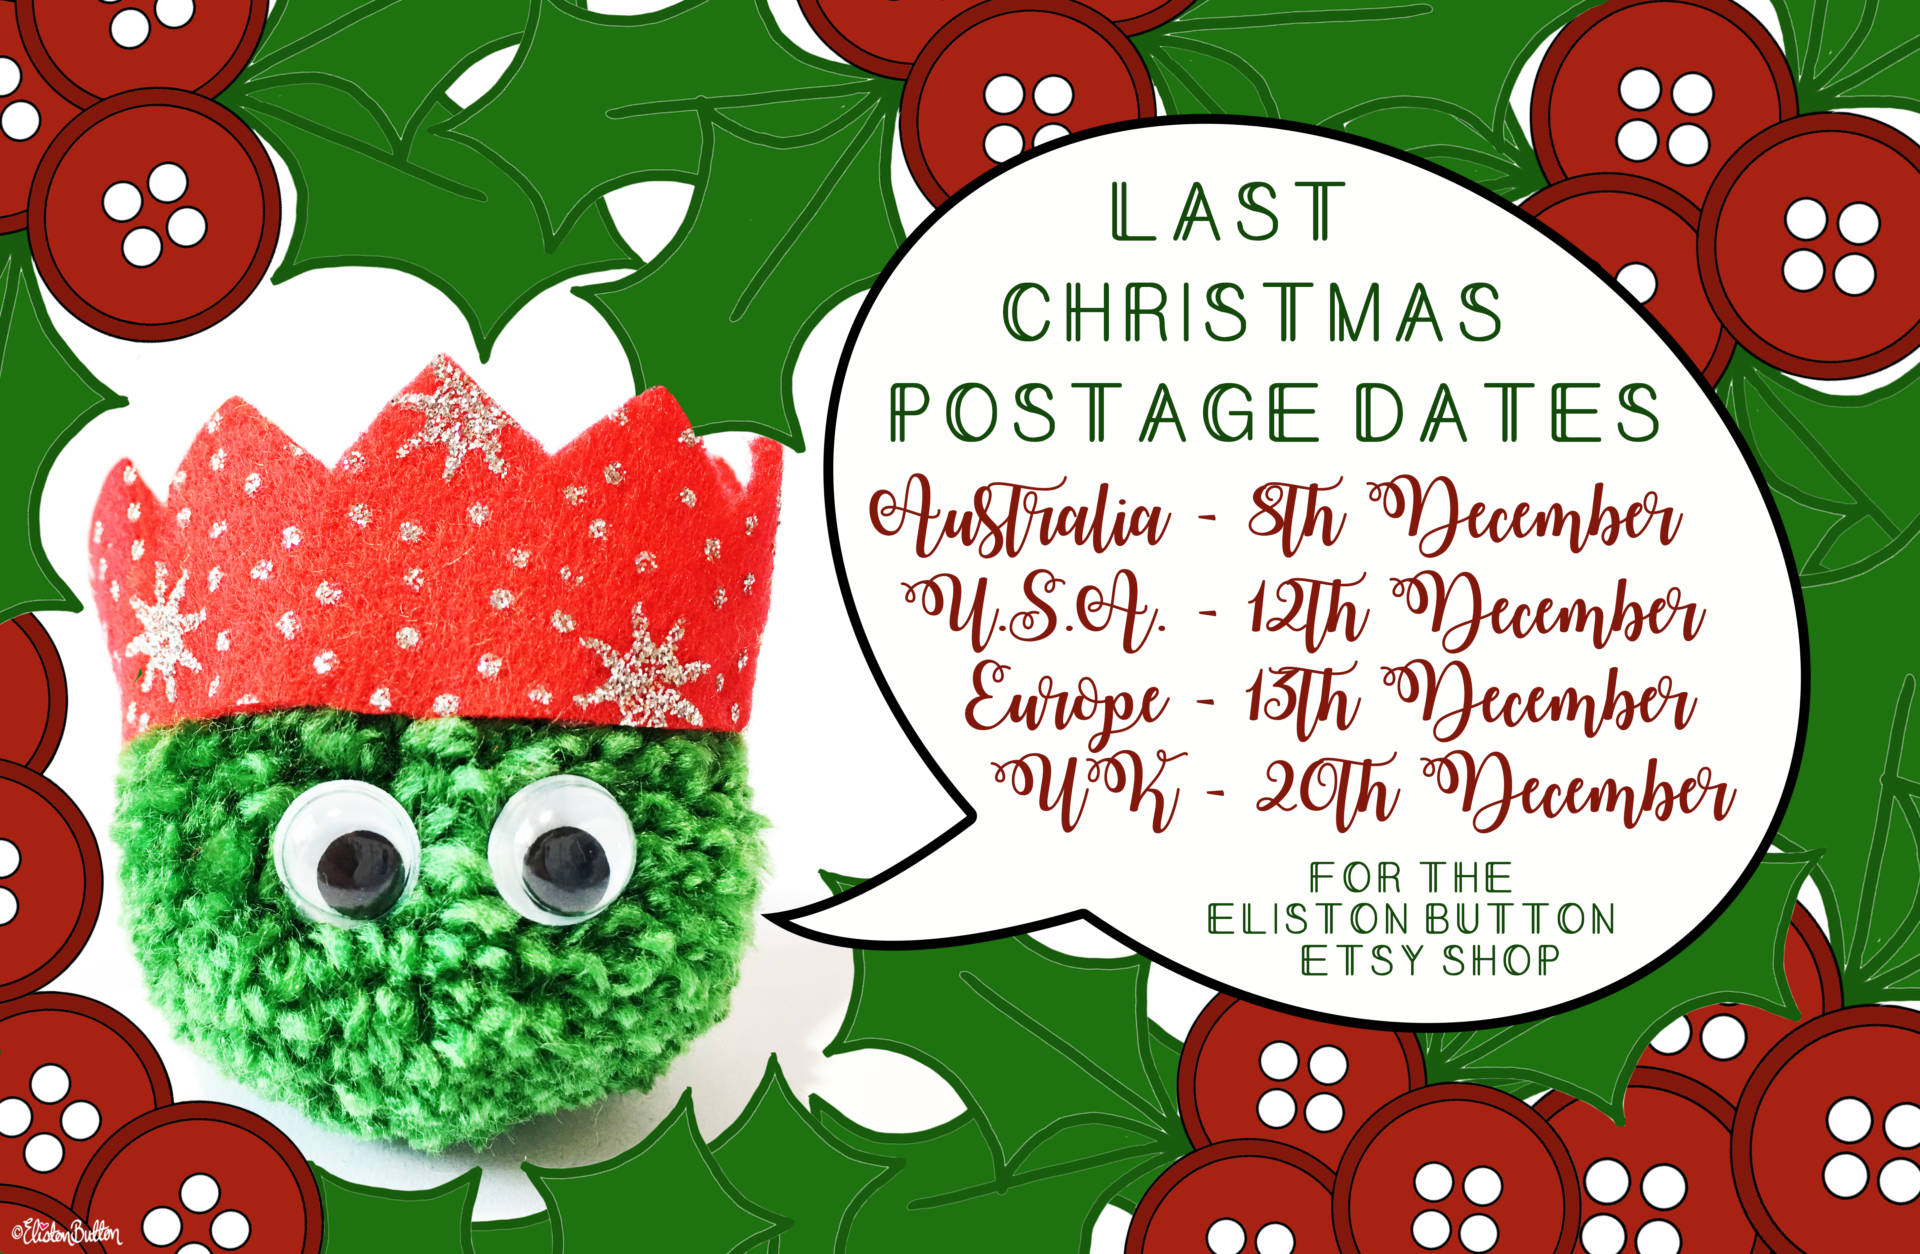 Last Christmas Postage Dates for the Eliston Button Etsy Shop - Last Christmas Postage Dates! at www.elistonbutton.com - Eliston Button - That Crafty Kid – Art, Design, Craft & Adventure.